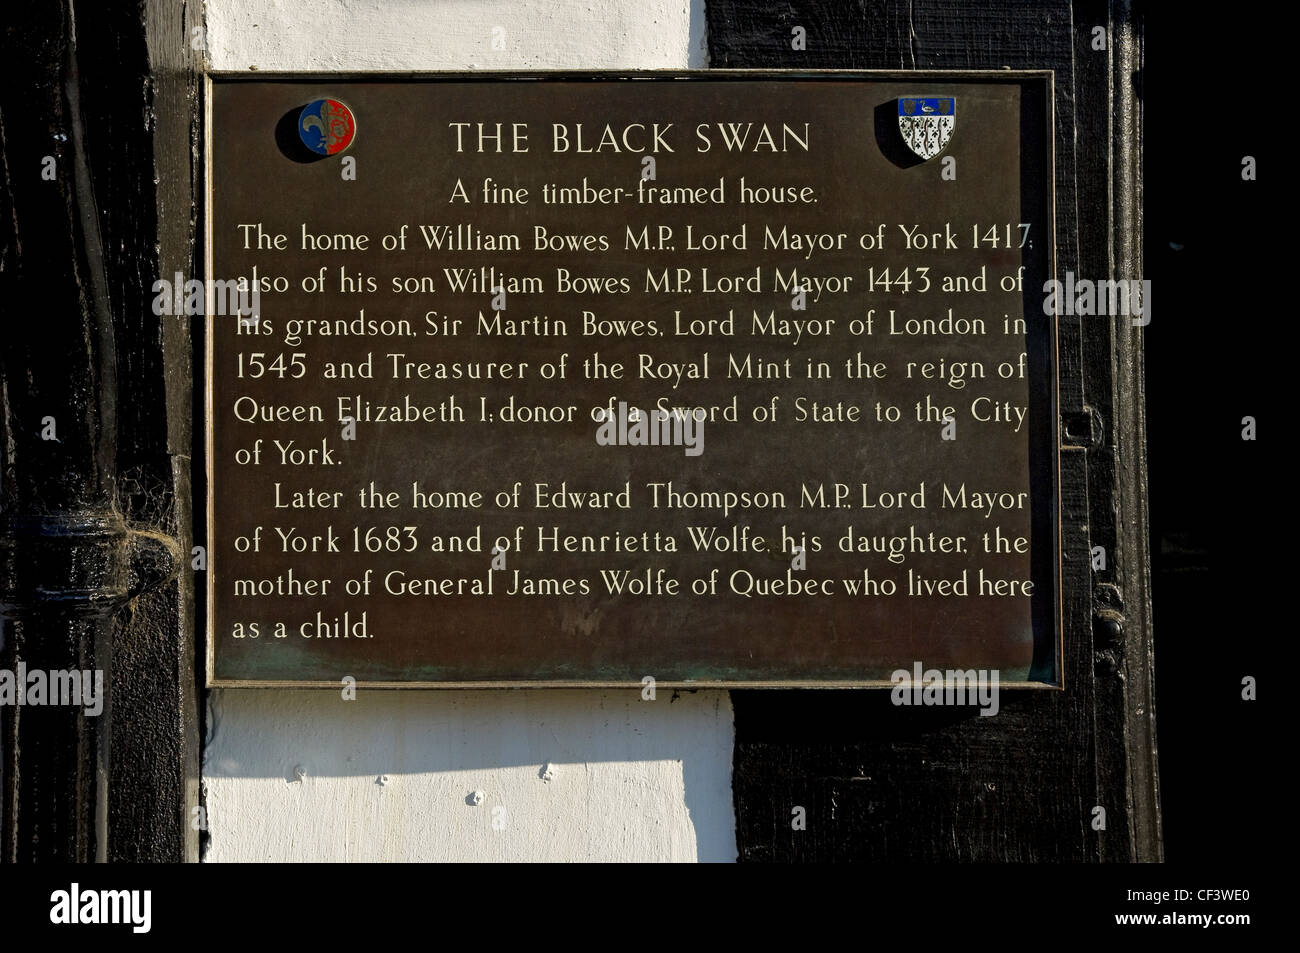 Bronze plaque on the wall of the Black Swan pub in Peasholme Green. - Stock Image